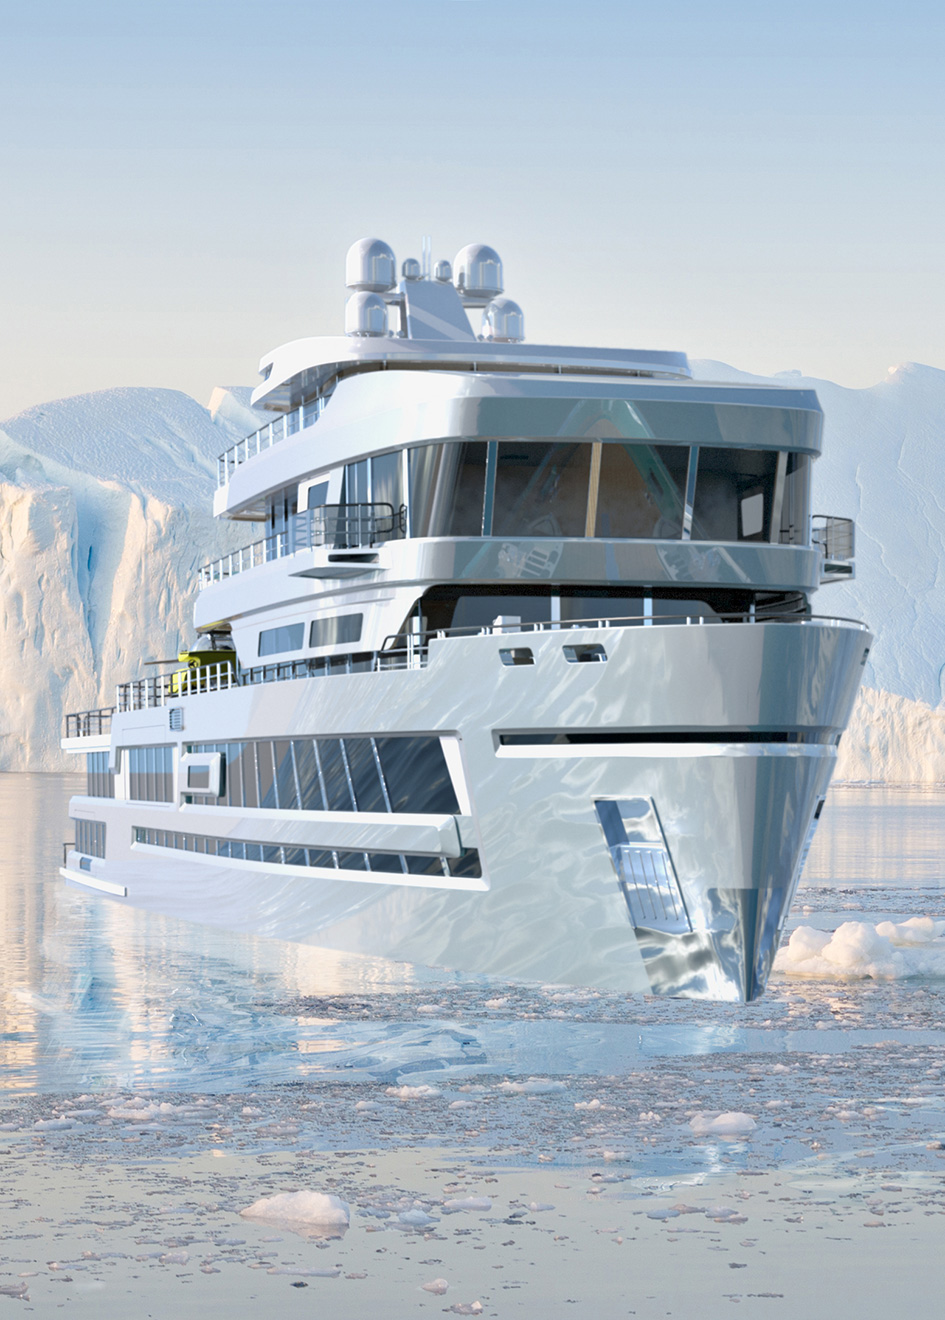 bow-view-of-the-gill-schmid-explorer-yacht-concept-mystique